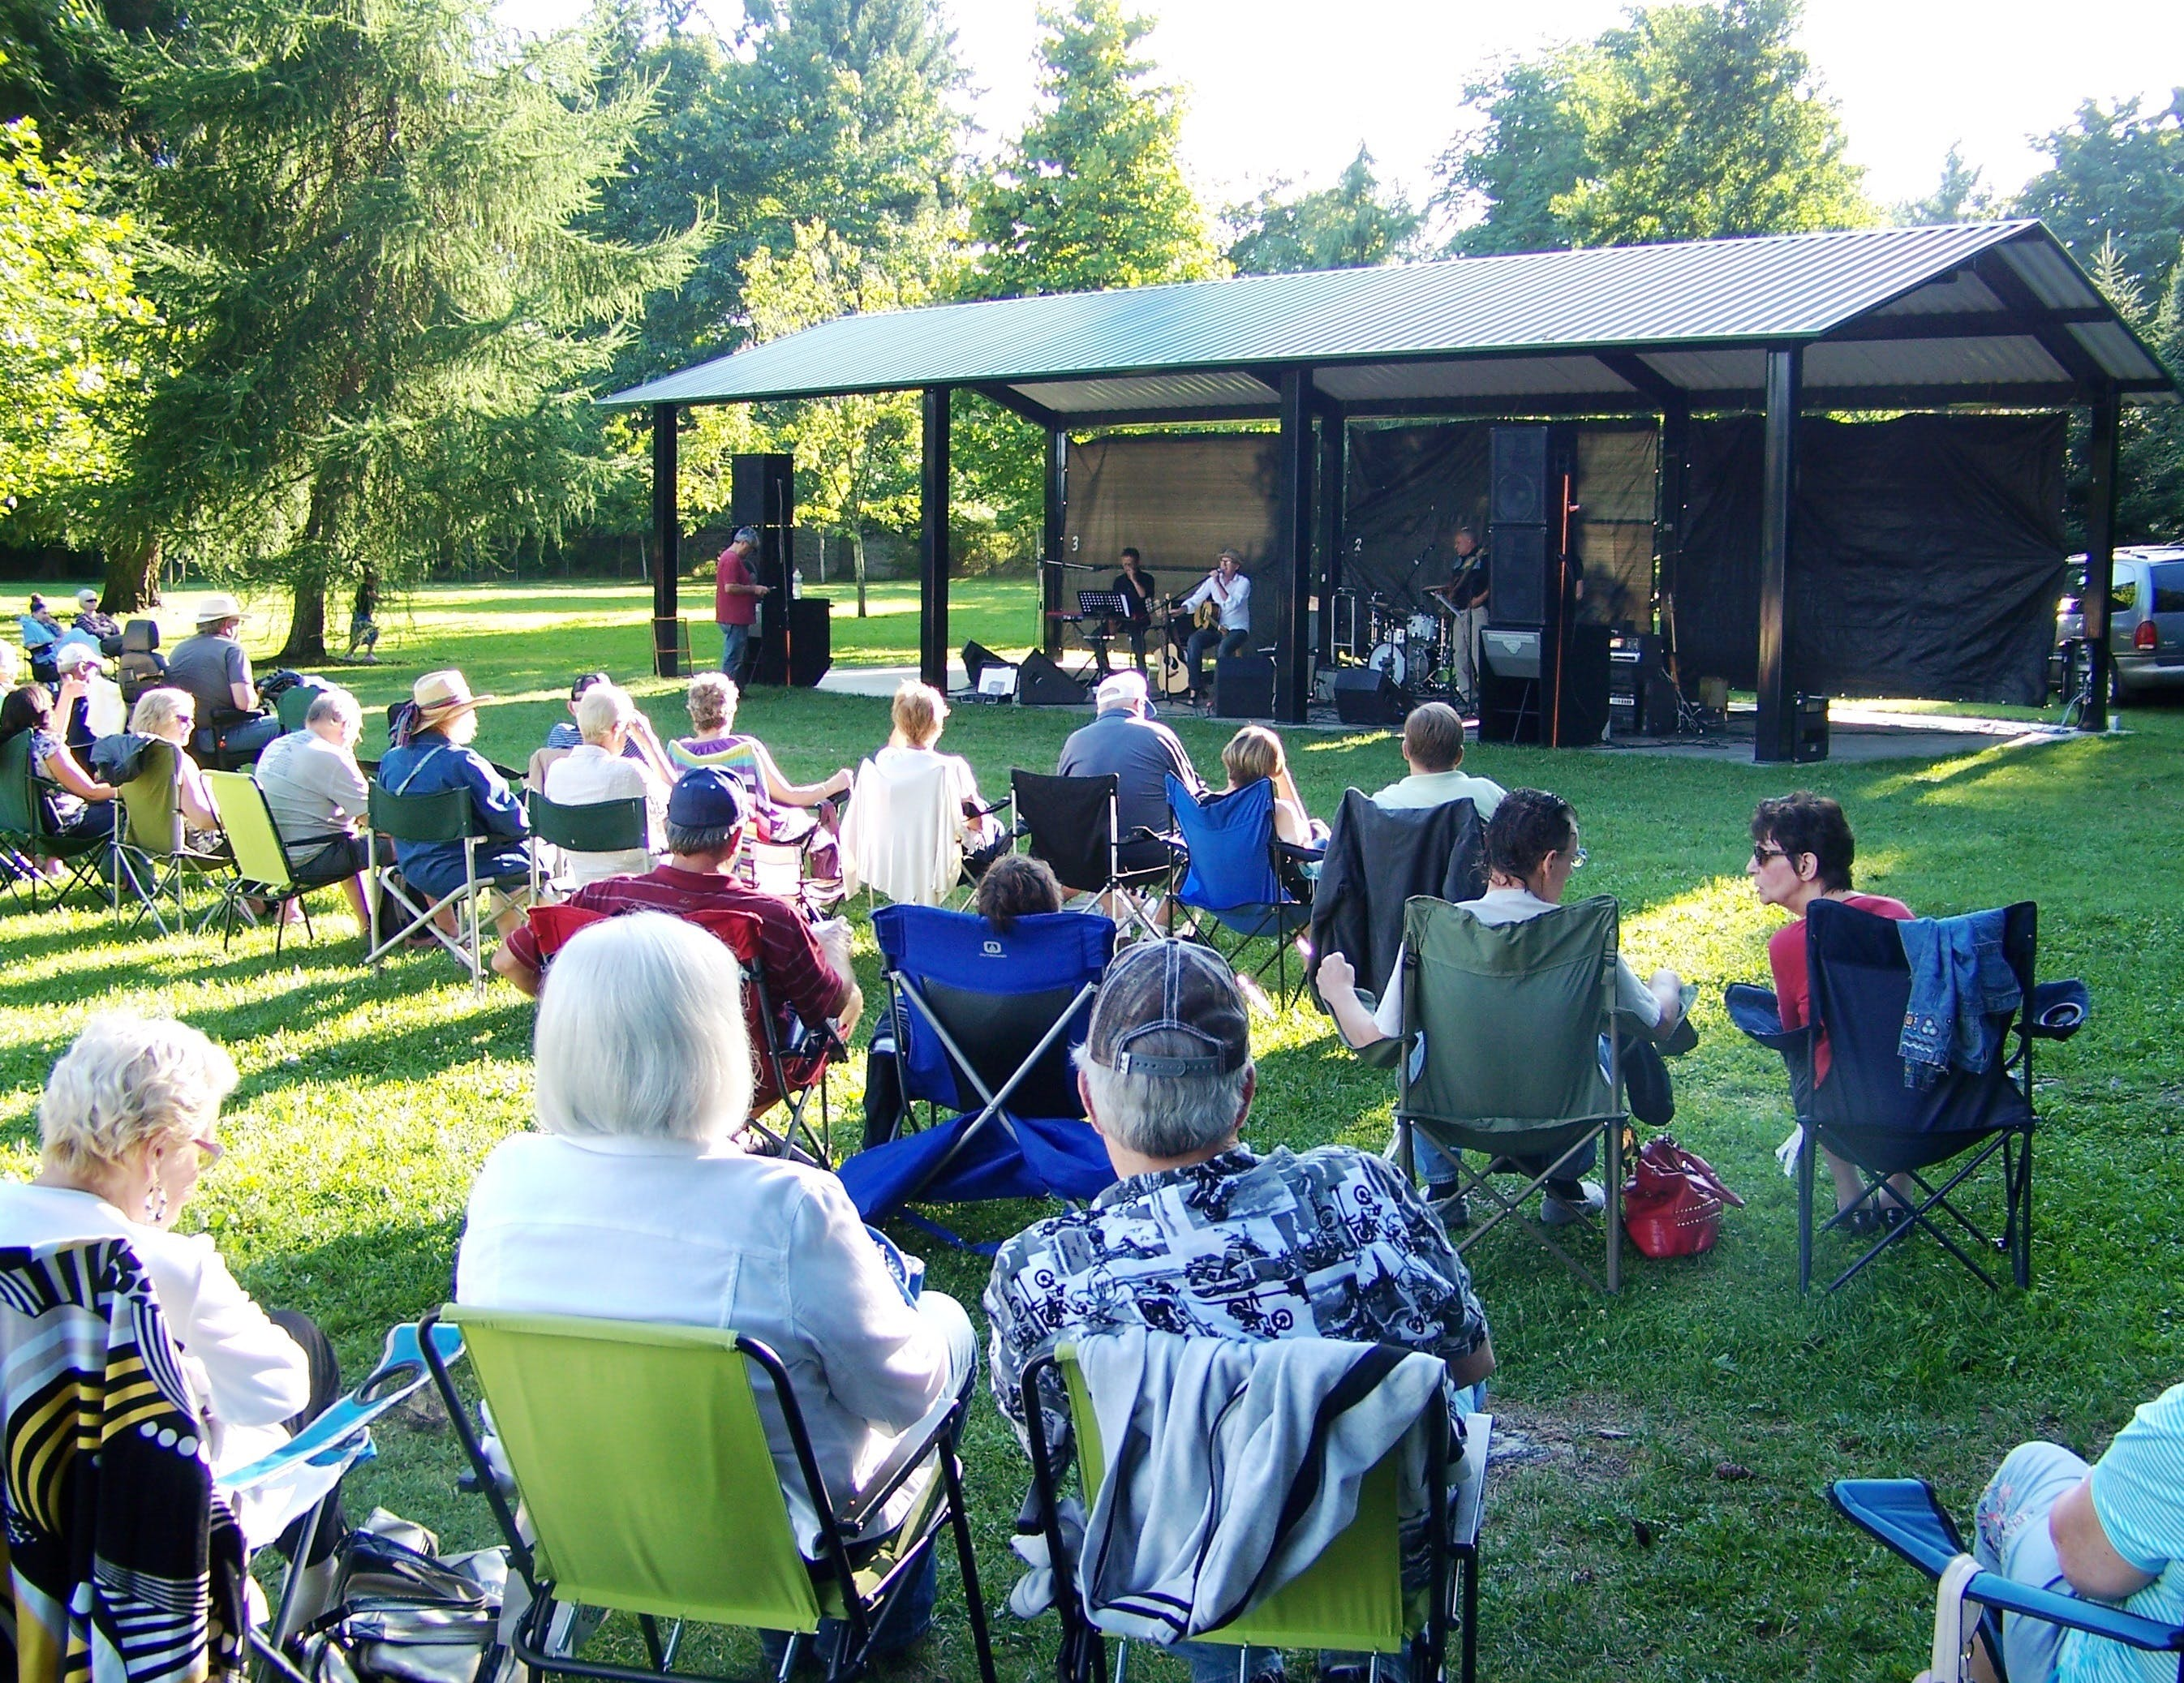 Entertainment at the picnic shelter